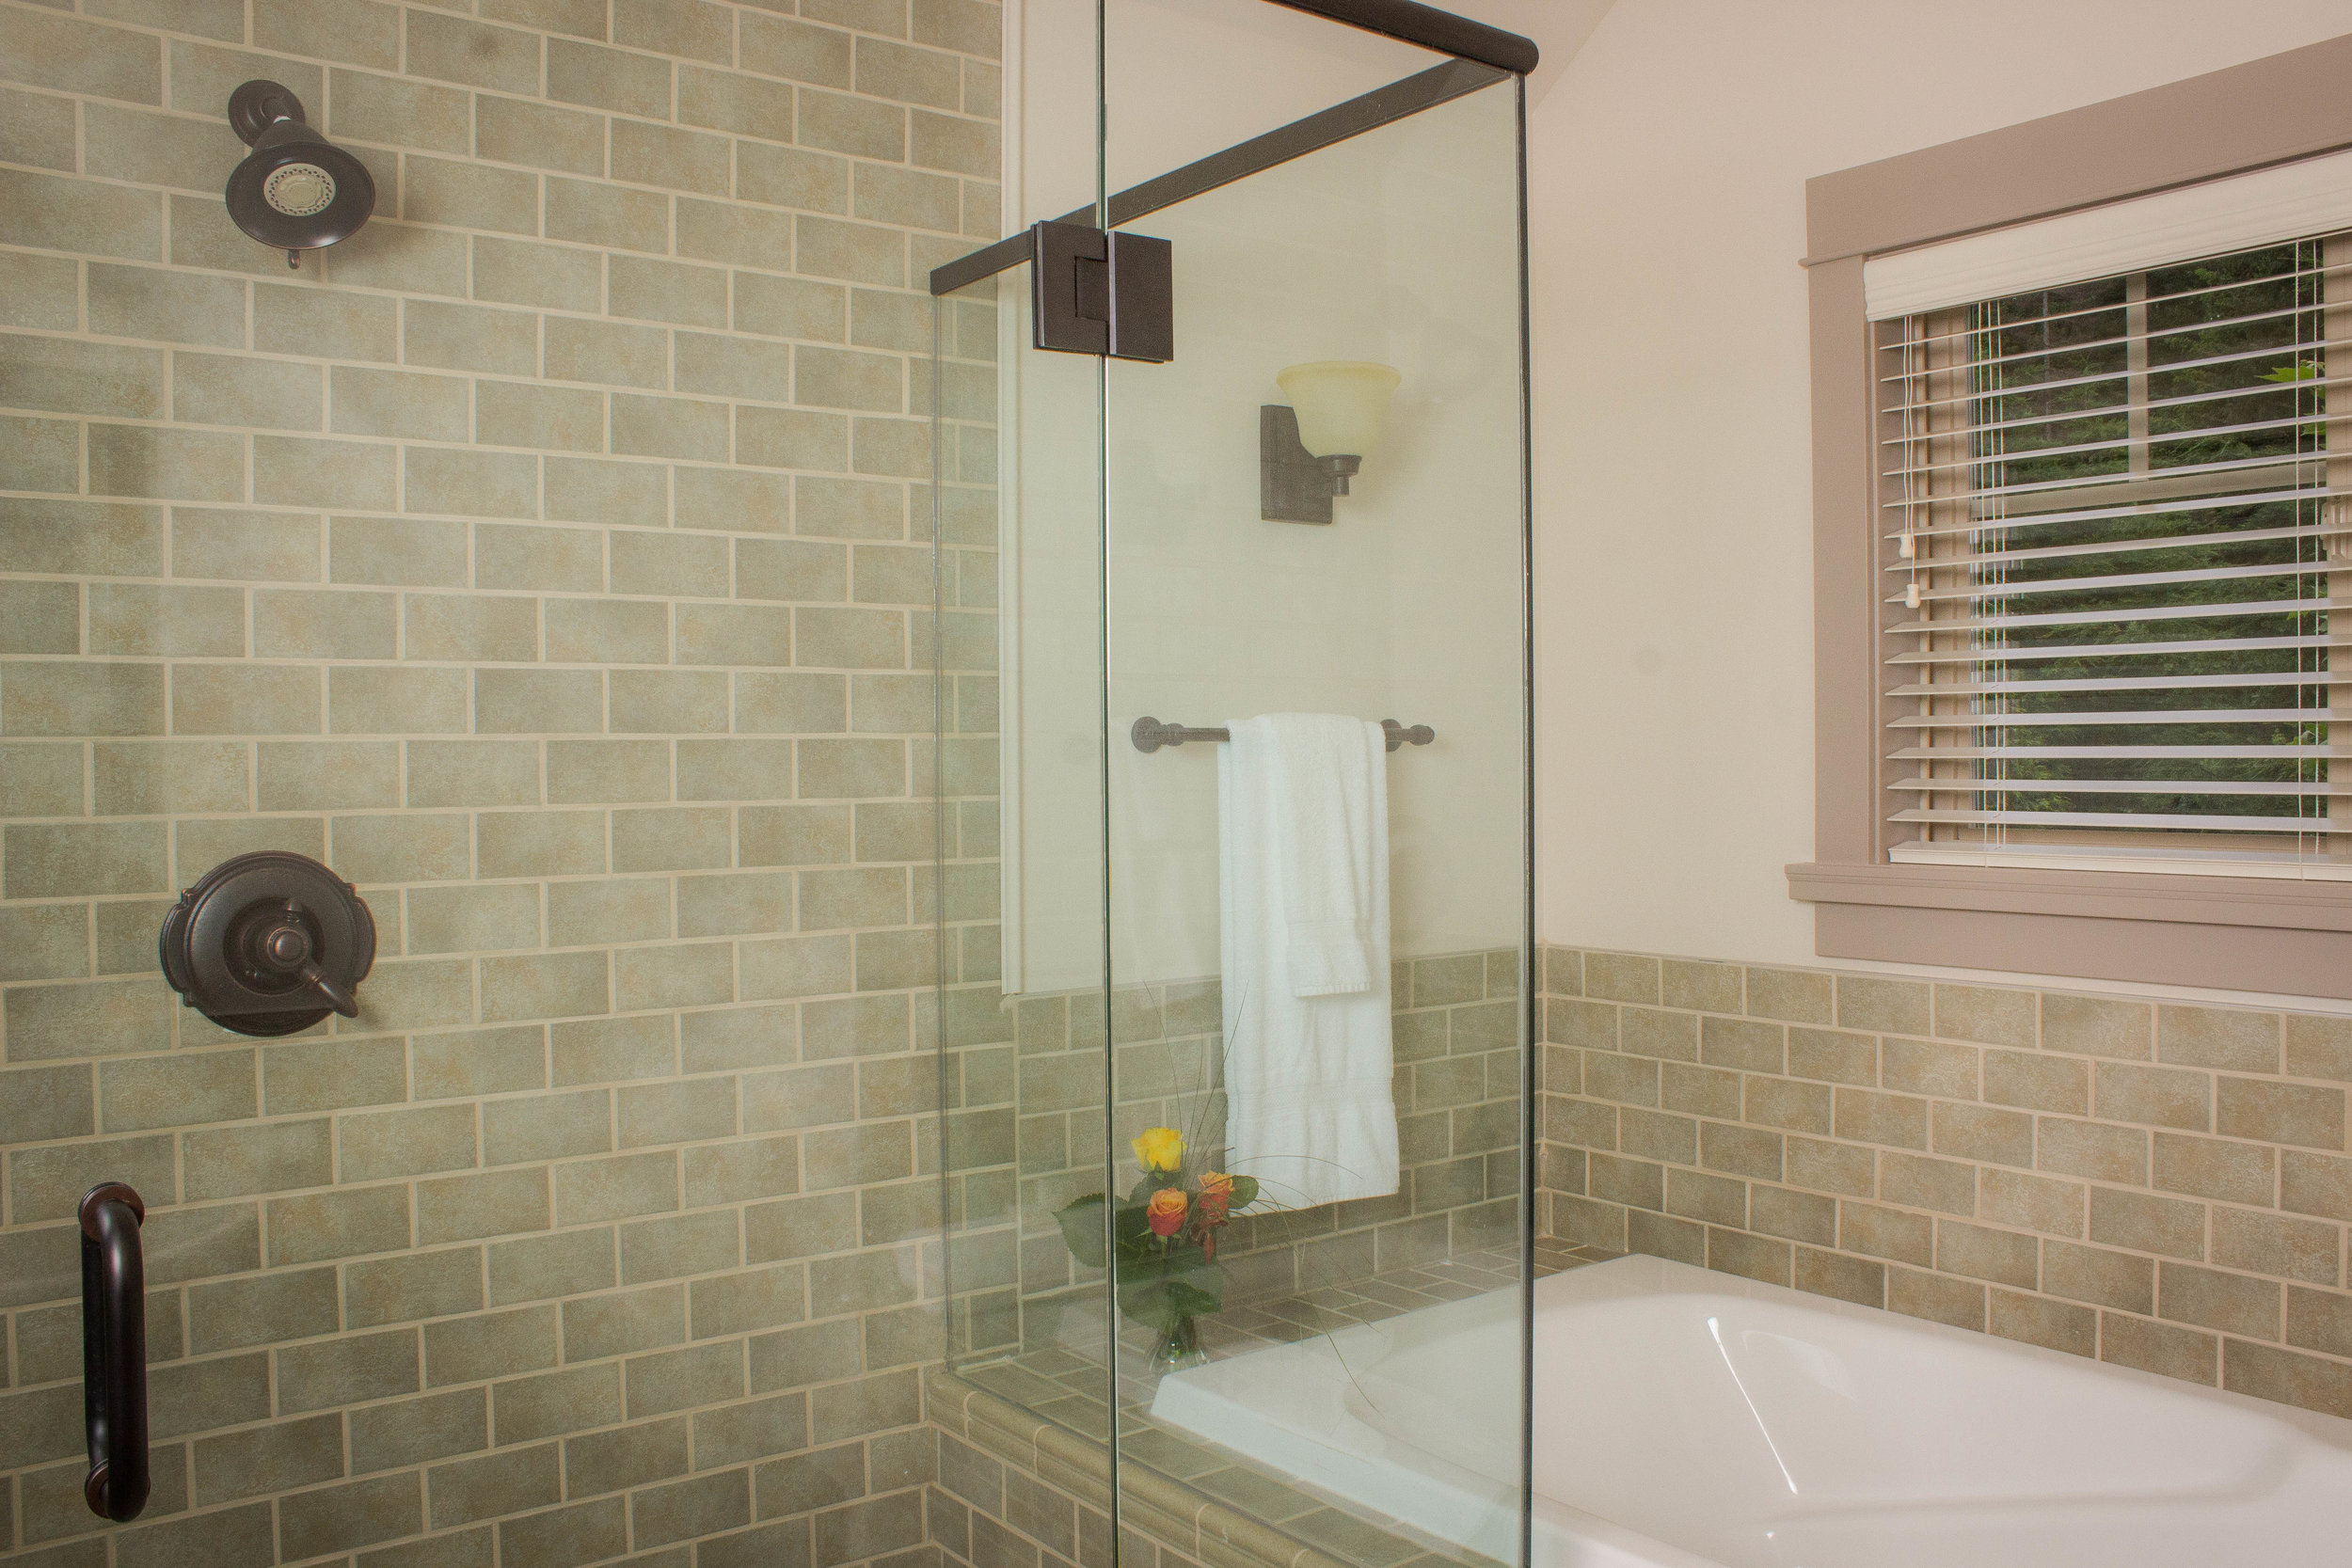 Cottages Features - Extensive glass shower enclosures in all bathrooms